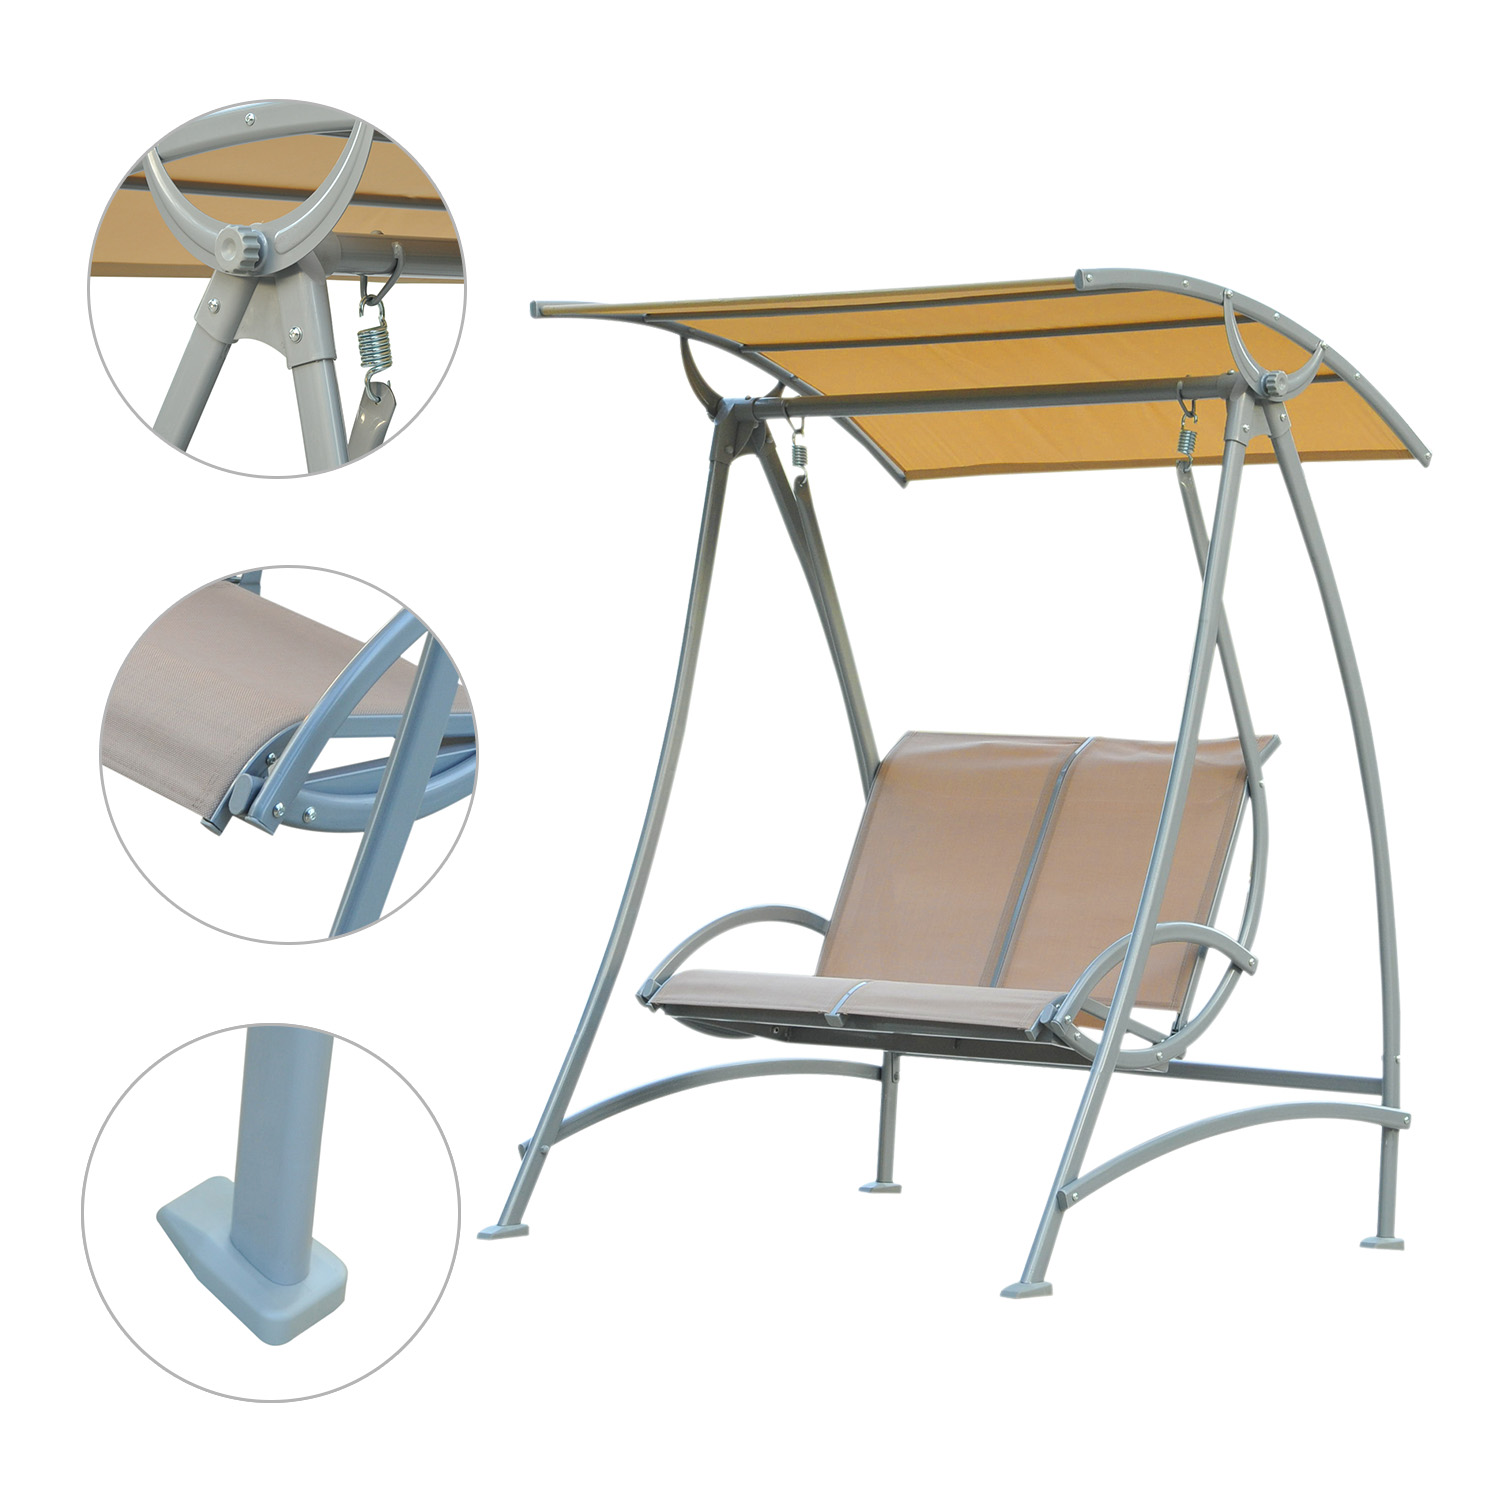 Image of CAD $229.99 Outsunny Garden Swing Chair 2 Seater Hammock Lounger Seat Bench Sun Canopy / with Metal Frame and Outdoor Hammock, Beige w/ Canada 25093577444